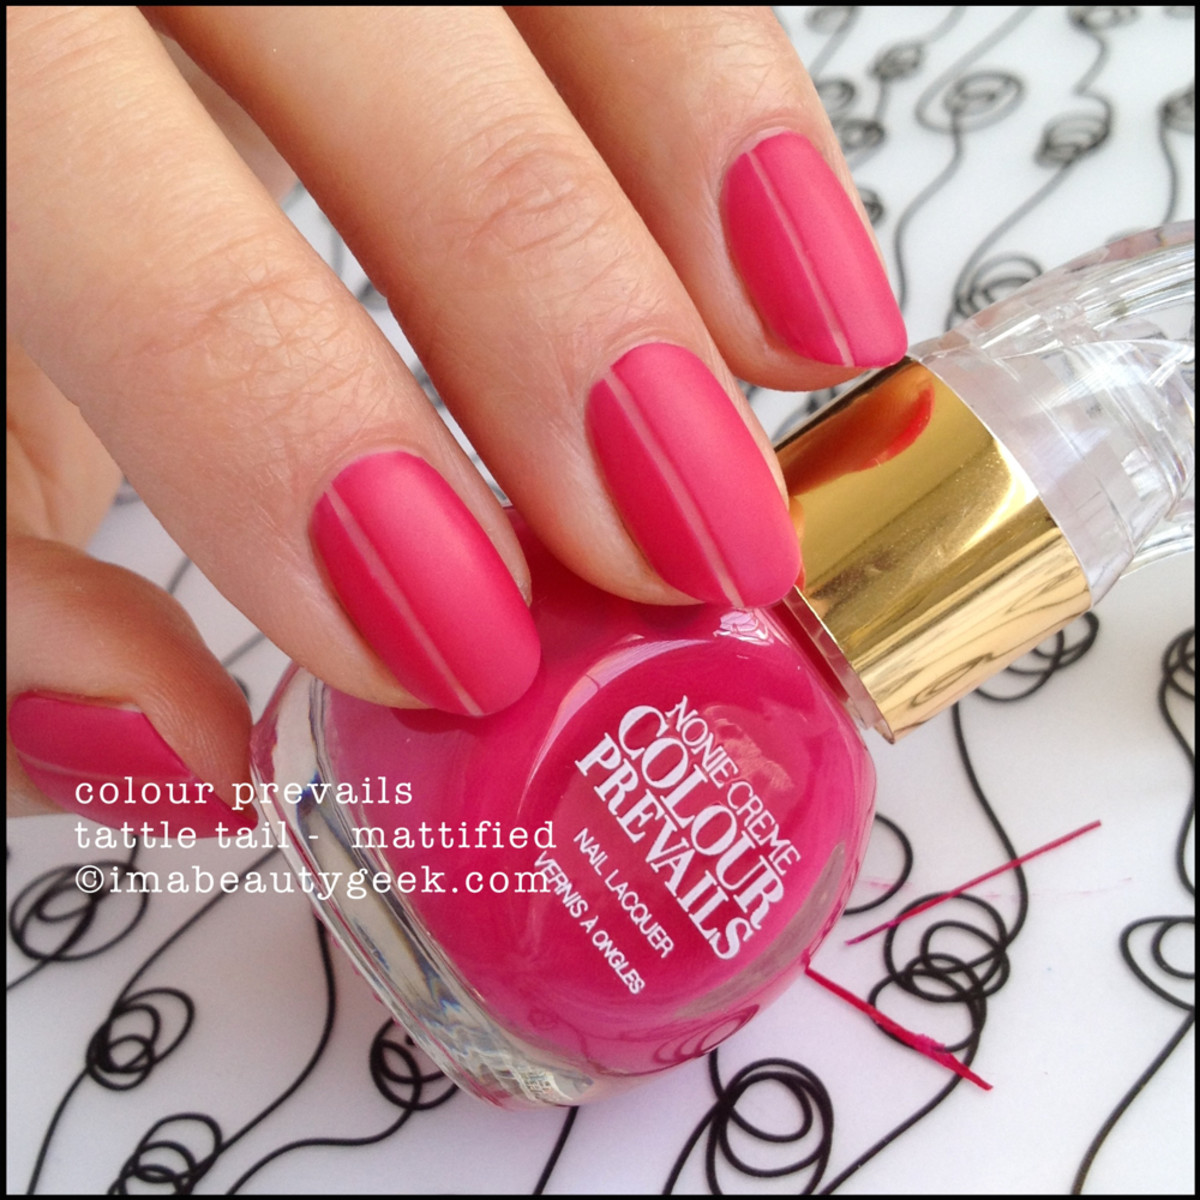 Colour Prevails Tattle Tail Mattified Nail Polish by Nonie Creme